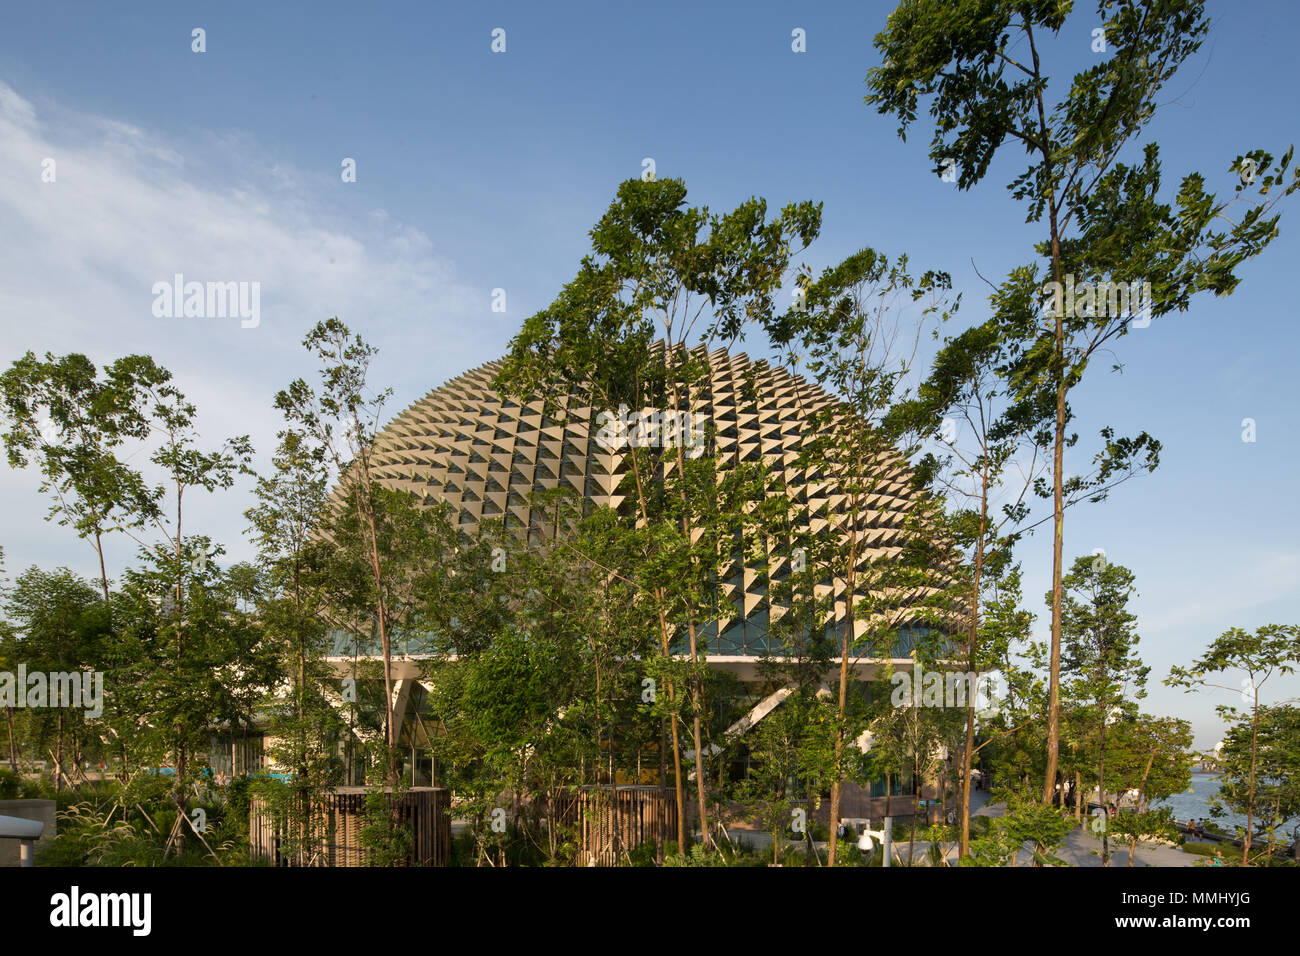 Exterior view of The Esplanade dome and the garden landscaping in the surrounding. - Stock Image